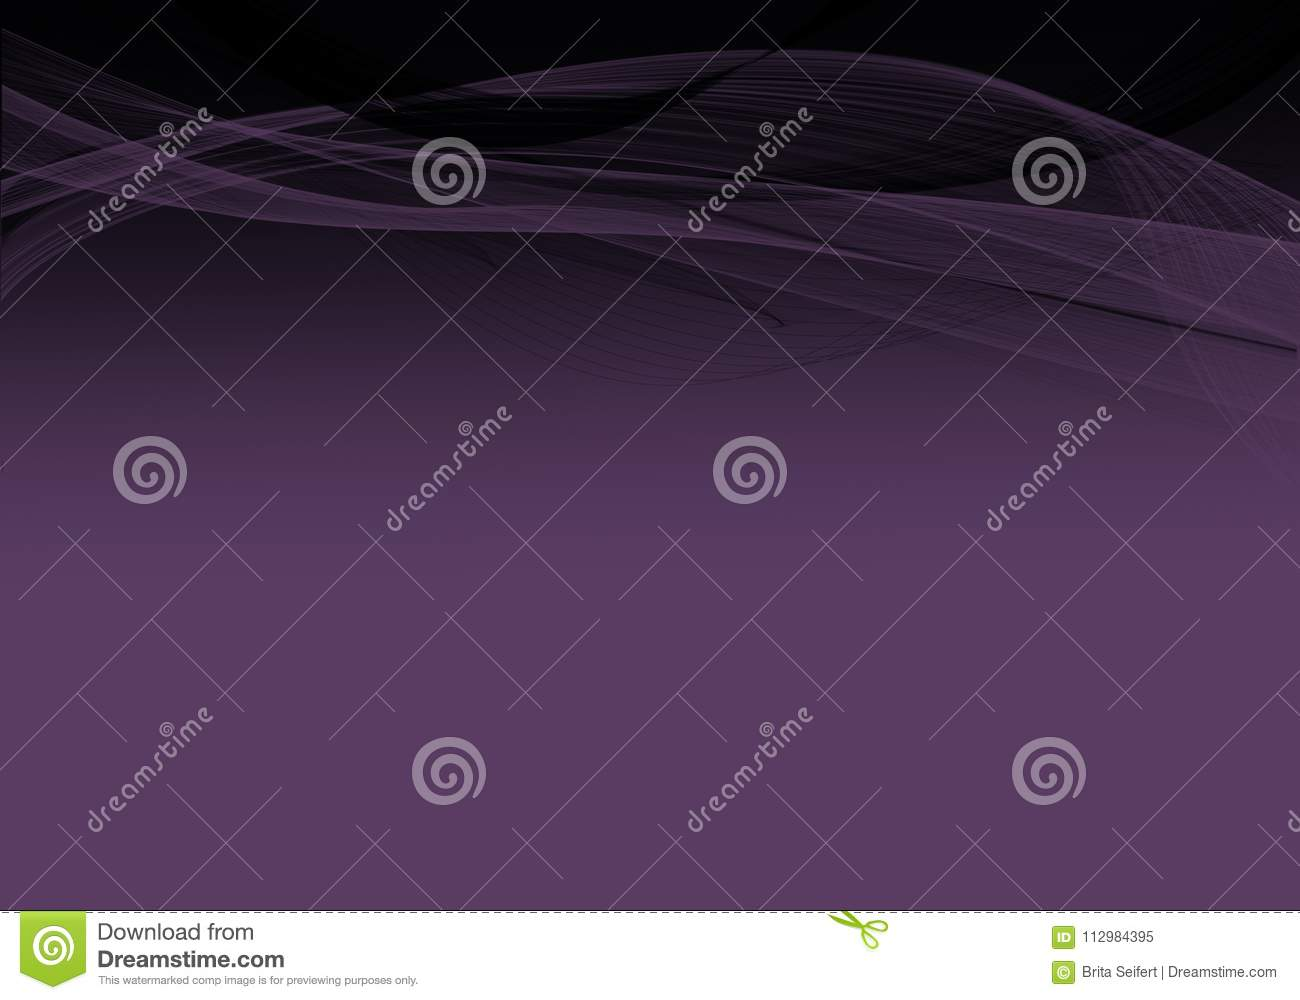 Elegant purple abstract background design